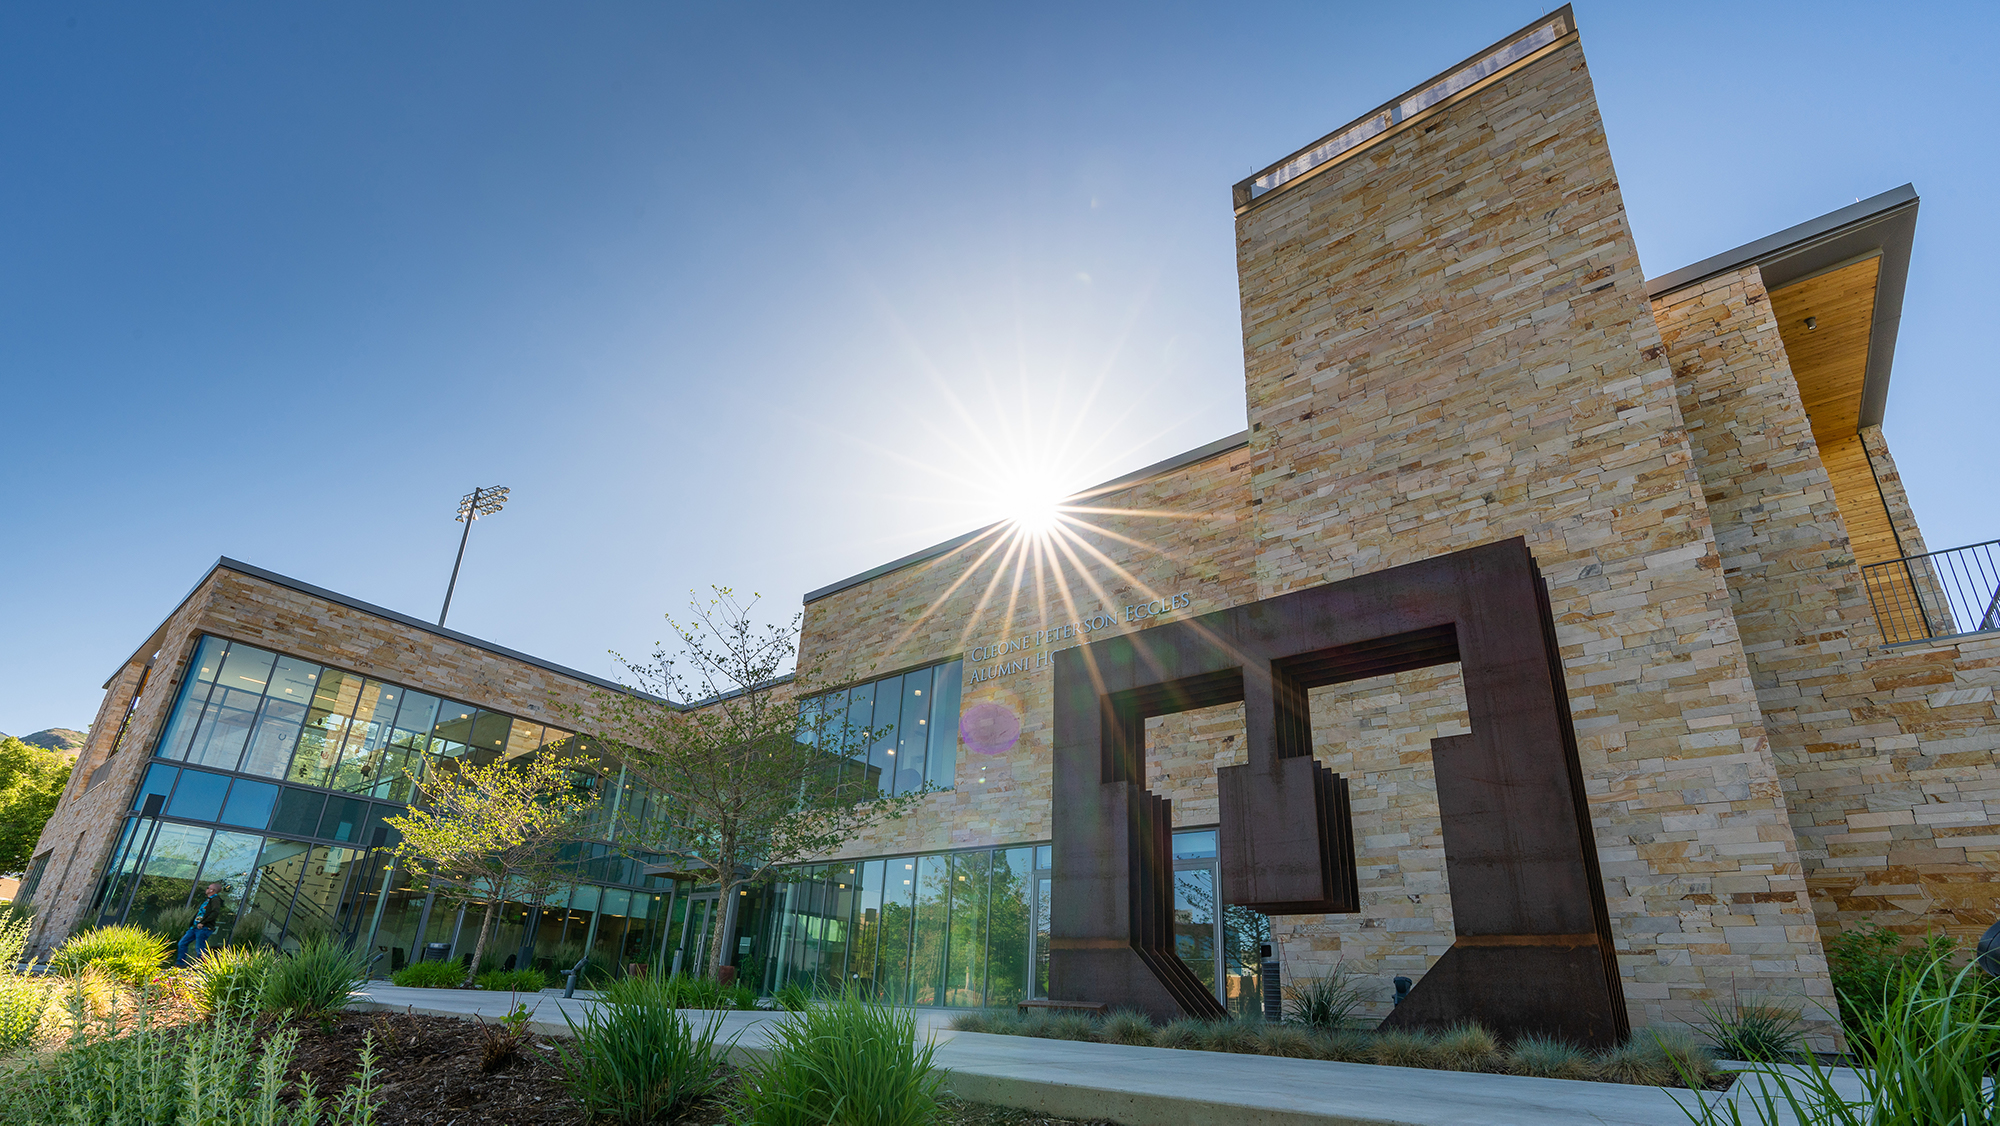 Alumni building photo is taken from ground up with sun peaking over building and prominent Block U sculpture is out front of the building.